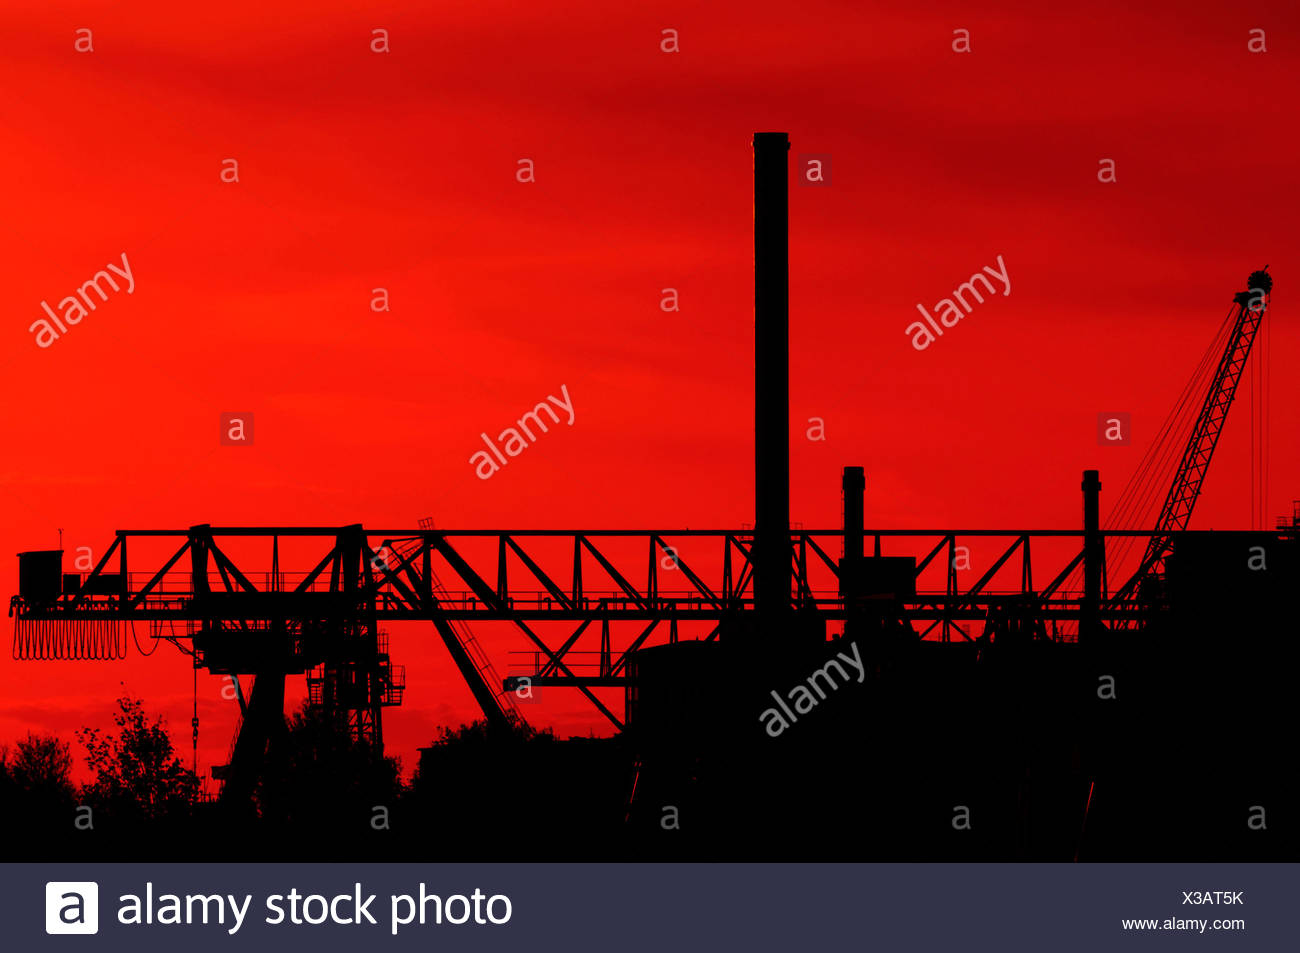 Cranes silhouetted at an industrial plant, Duesseldorf, North Rhine-Westphalia, Germany - Stock Image